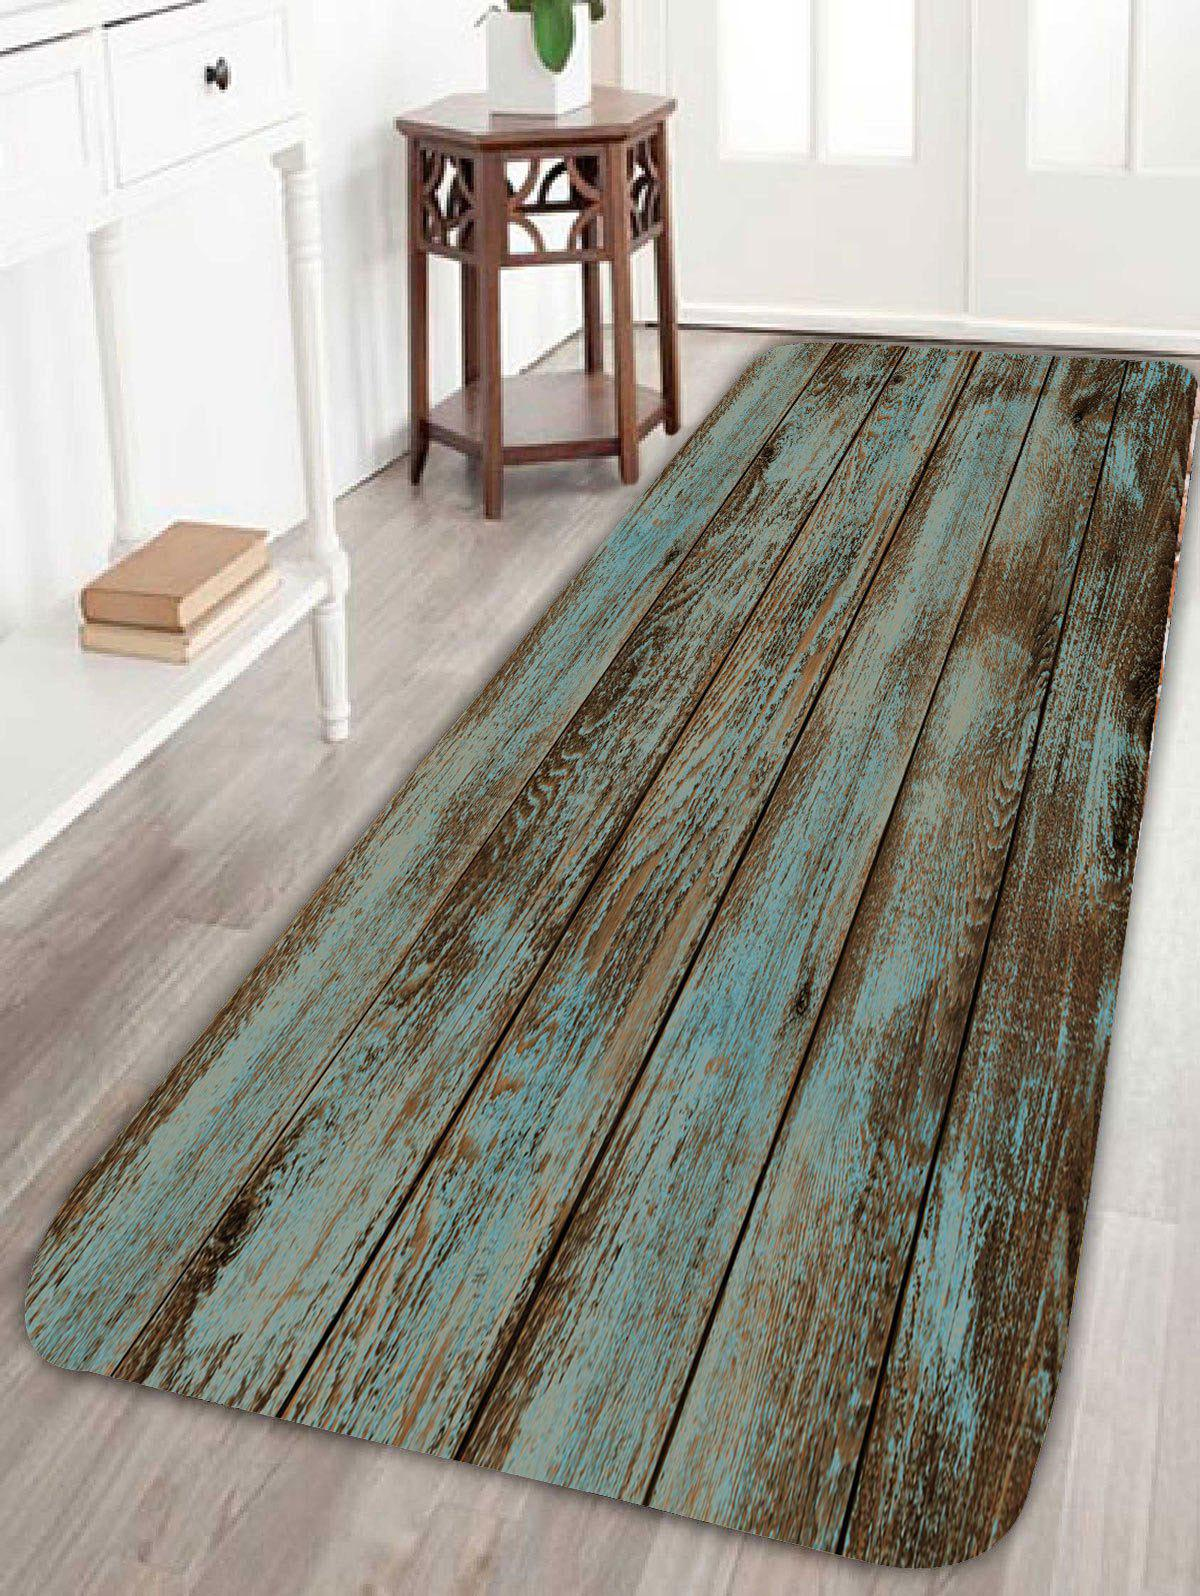 Peacock bathroom rug - Vintage Wood Grain Printed Bathroom Rug